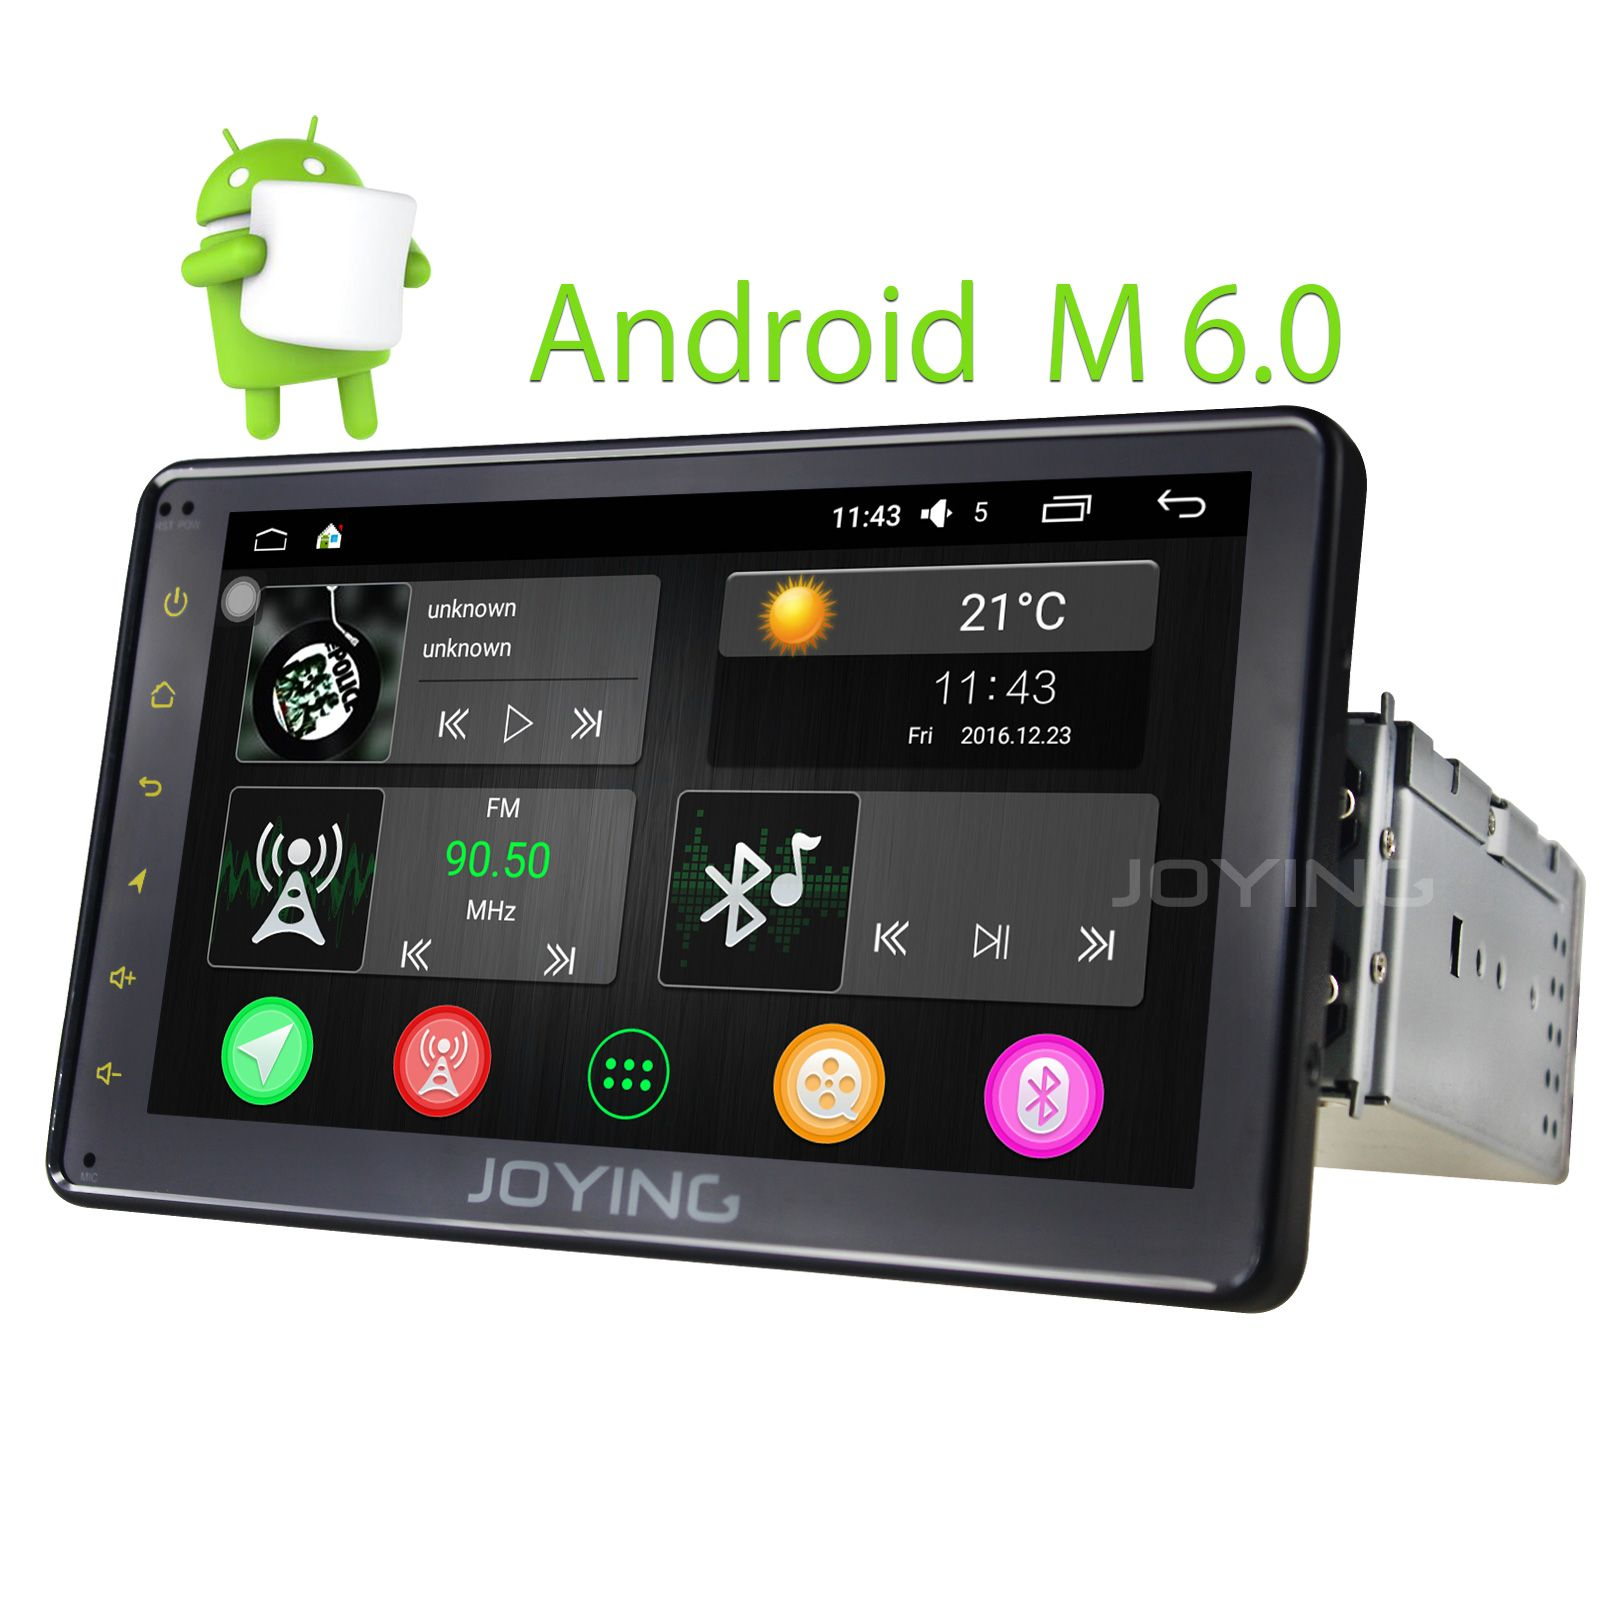 Joying best automotive single din 7 inch touchscreen pip car radio new android marshmallow os bluetooth audio gps navigation multimedia system support auto